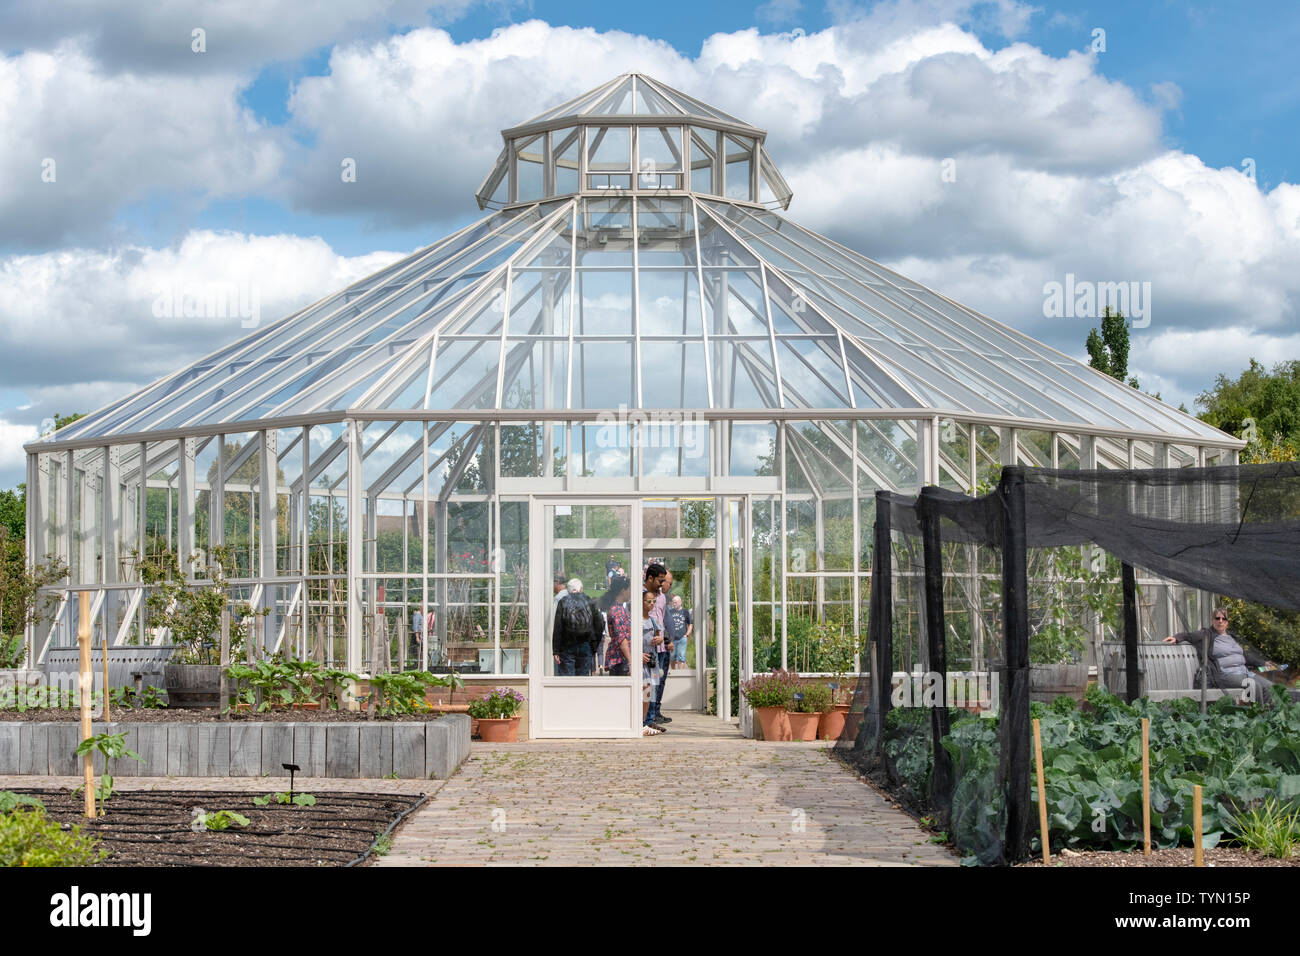 Octagonal glasshouse in the global growth garden RHS Hyde hall, Chelmsford, Essex, England - Stock Image